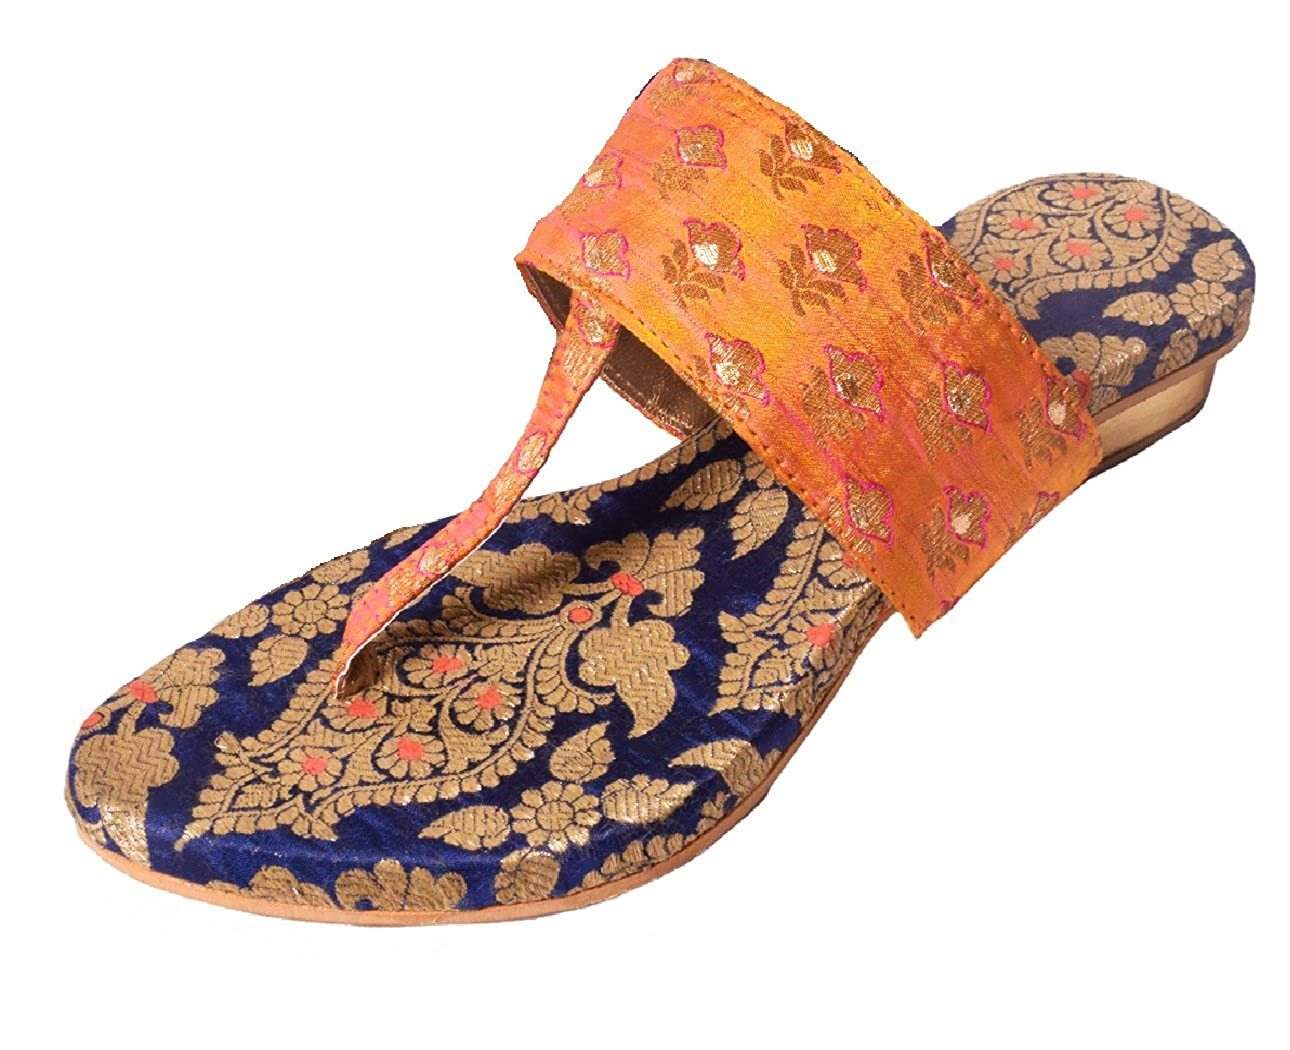 71456c8be89cb Samayra Women s Multi Colour Fabric Fashion Sandals 11 UK  Buy Online at  Low Prices in India - Amazon.in